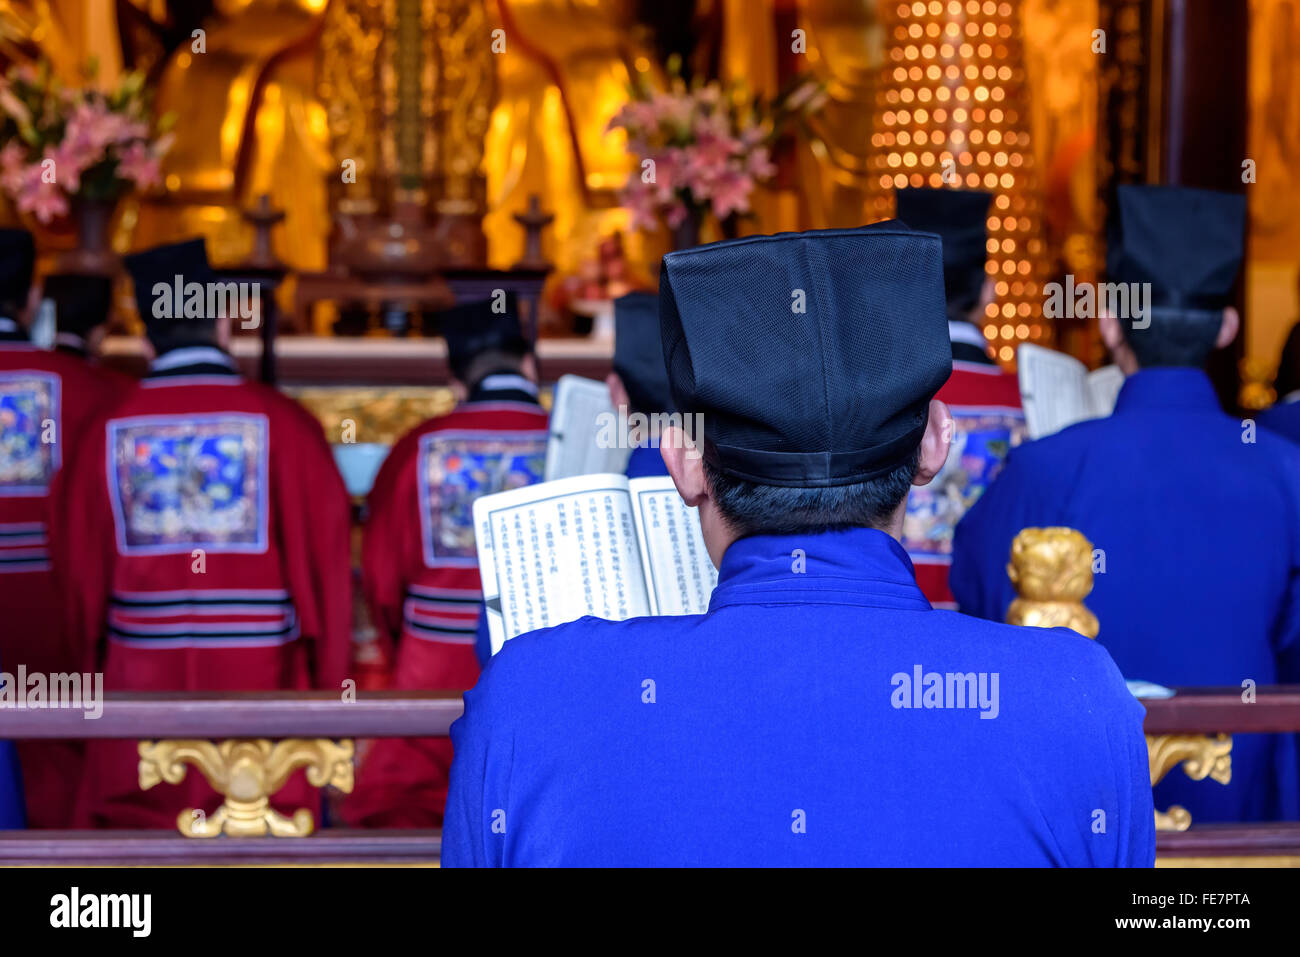 Chinese monks reciting the religious scripture in the temple. - Stock Image